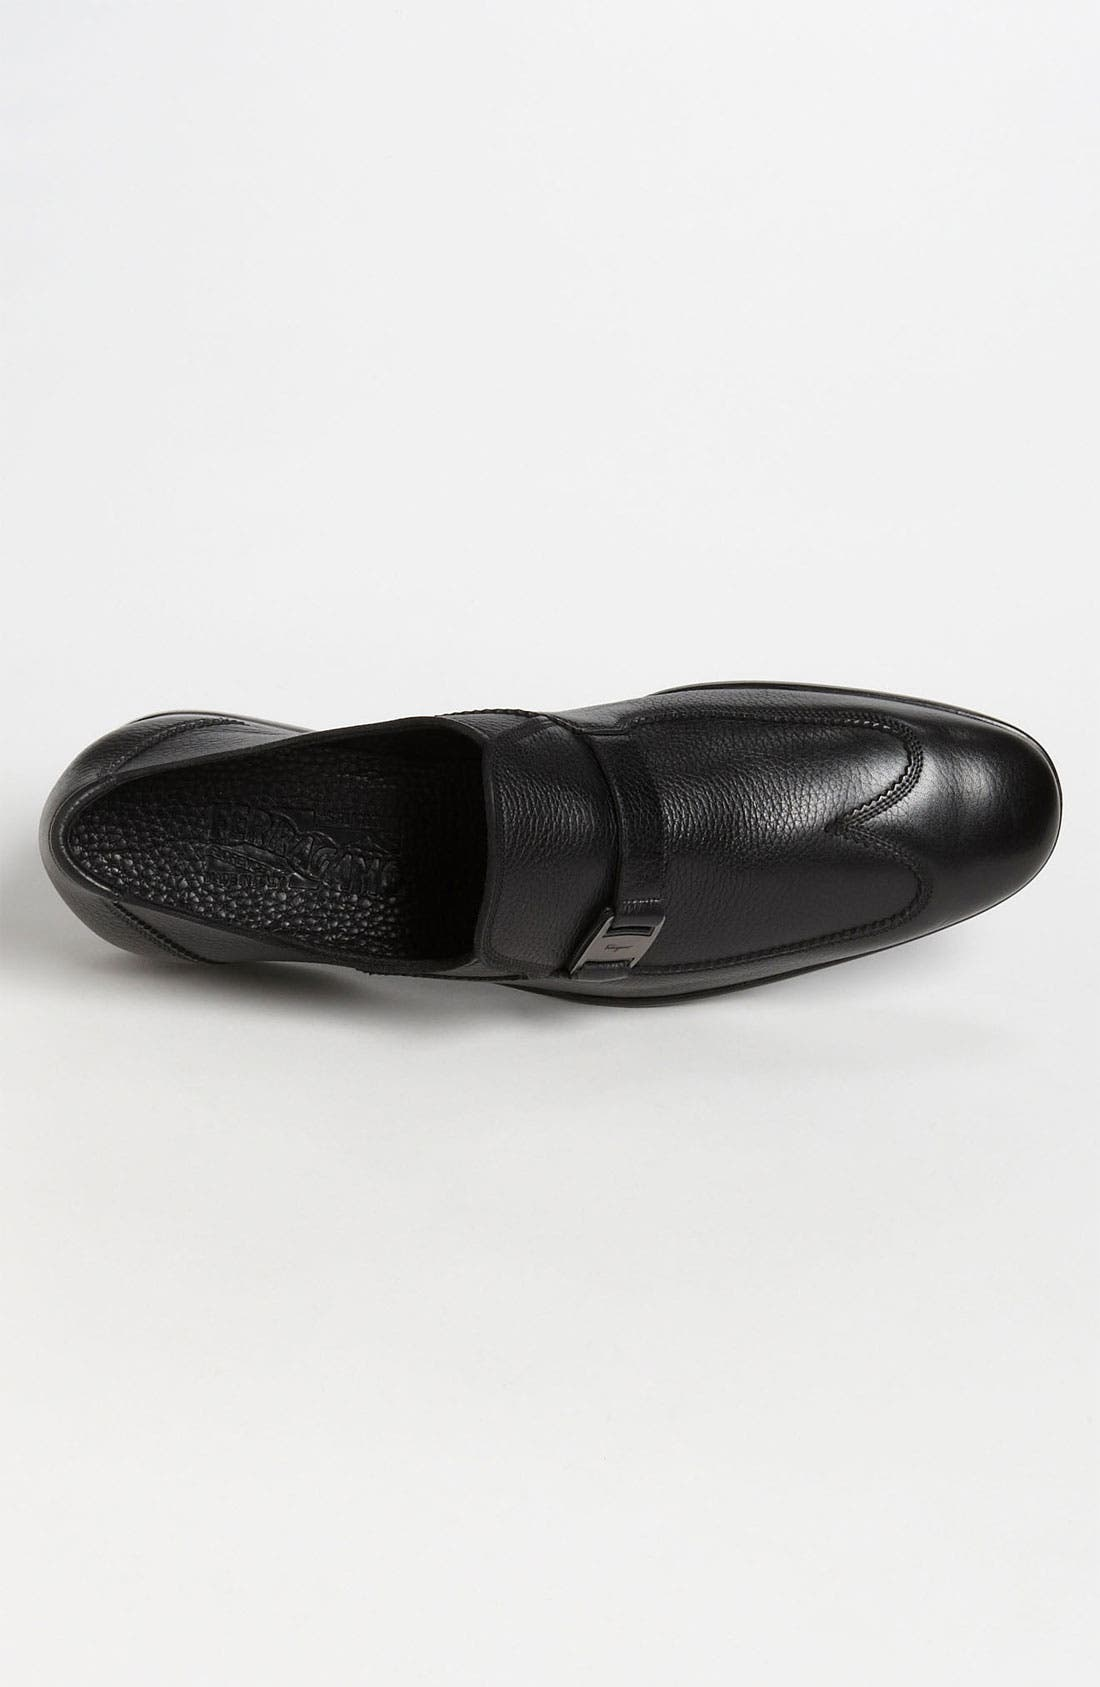 Alternate Image 3  - Salvatore Ferragamo 'Tecno' Wingtip Loafer